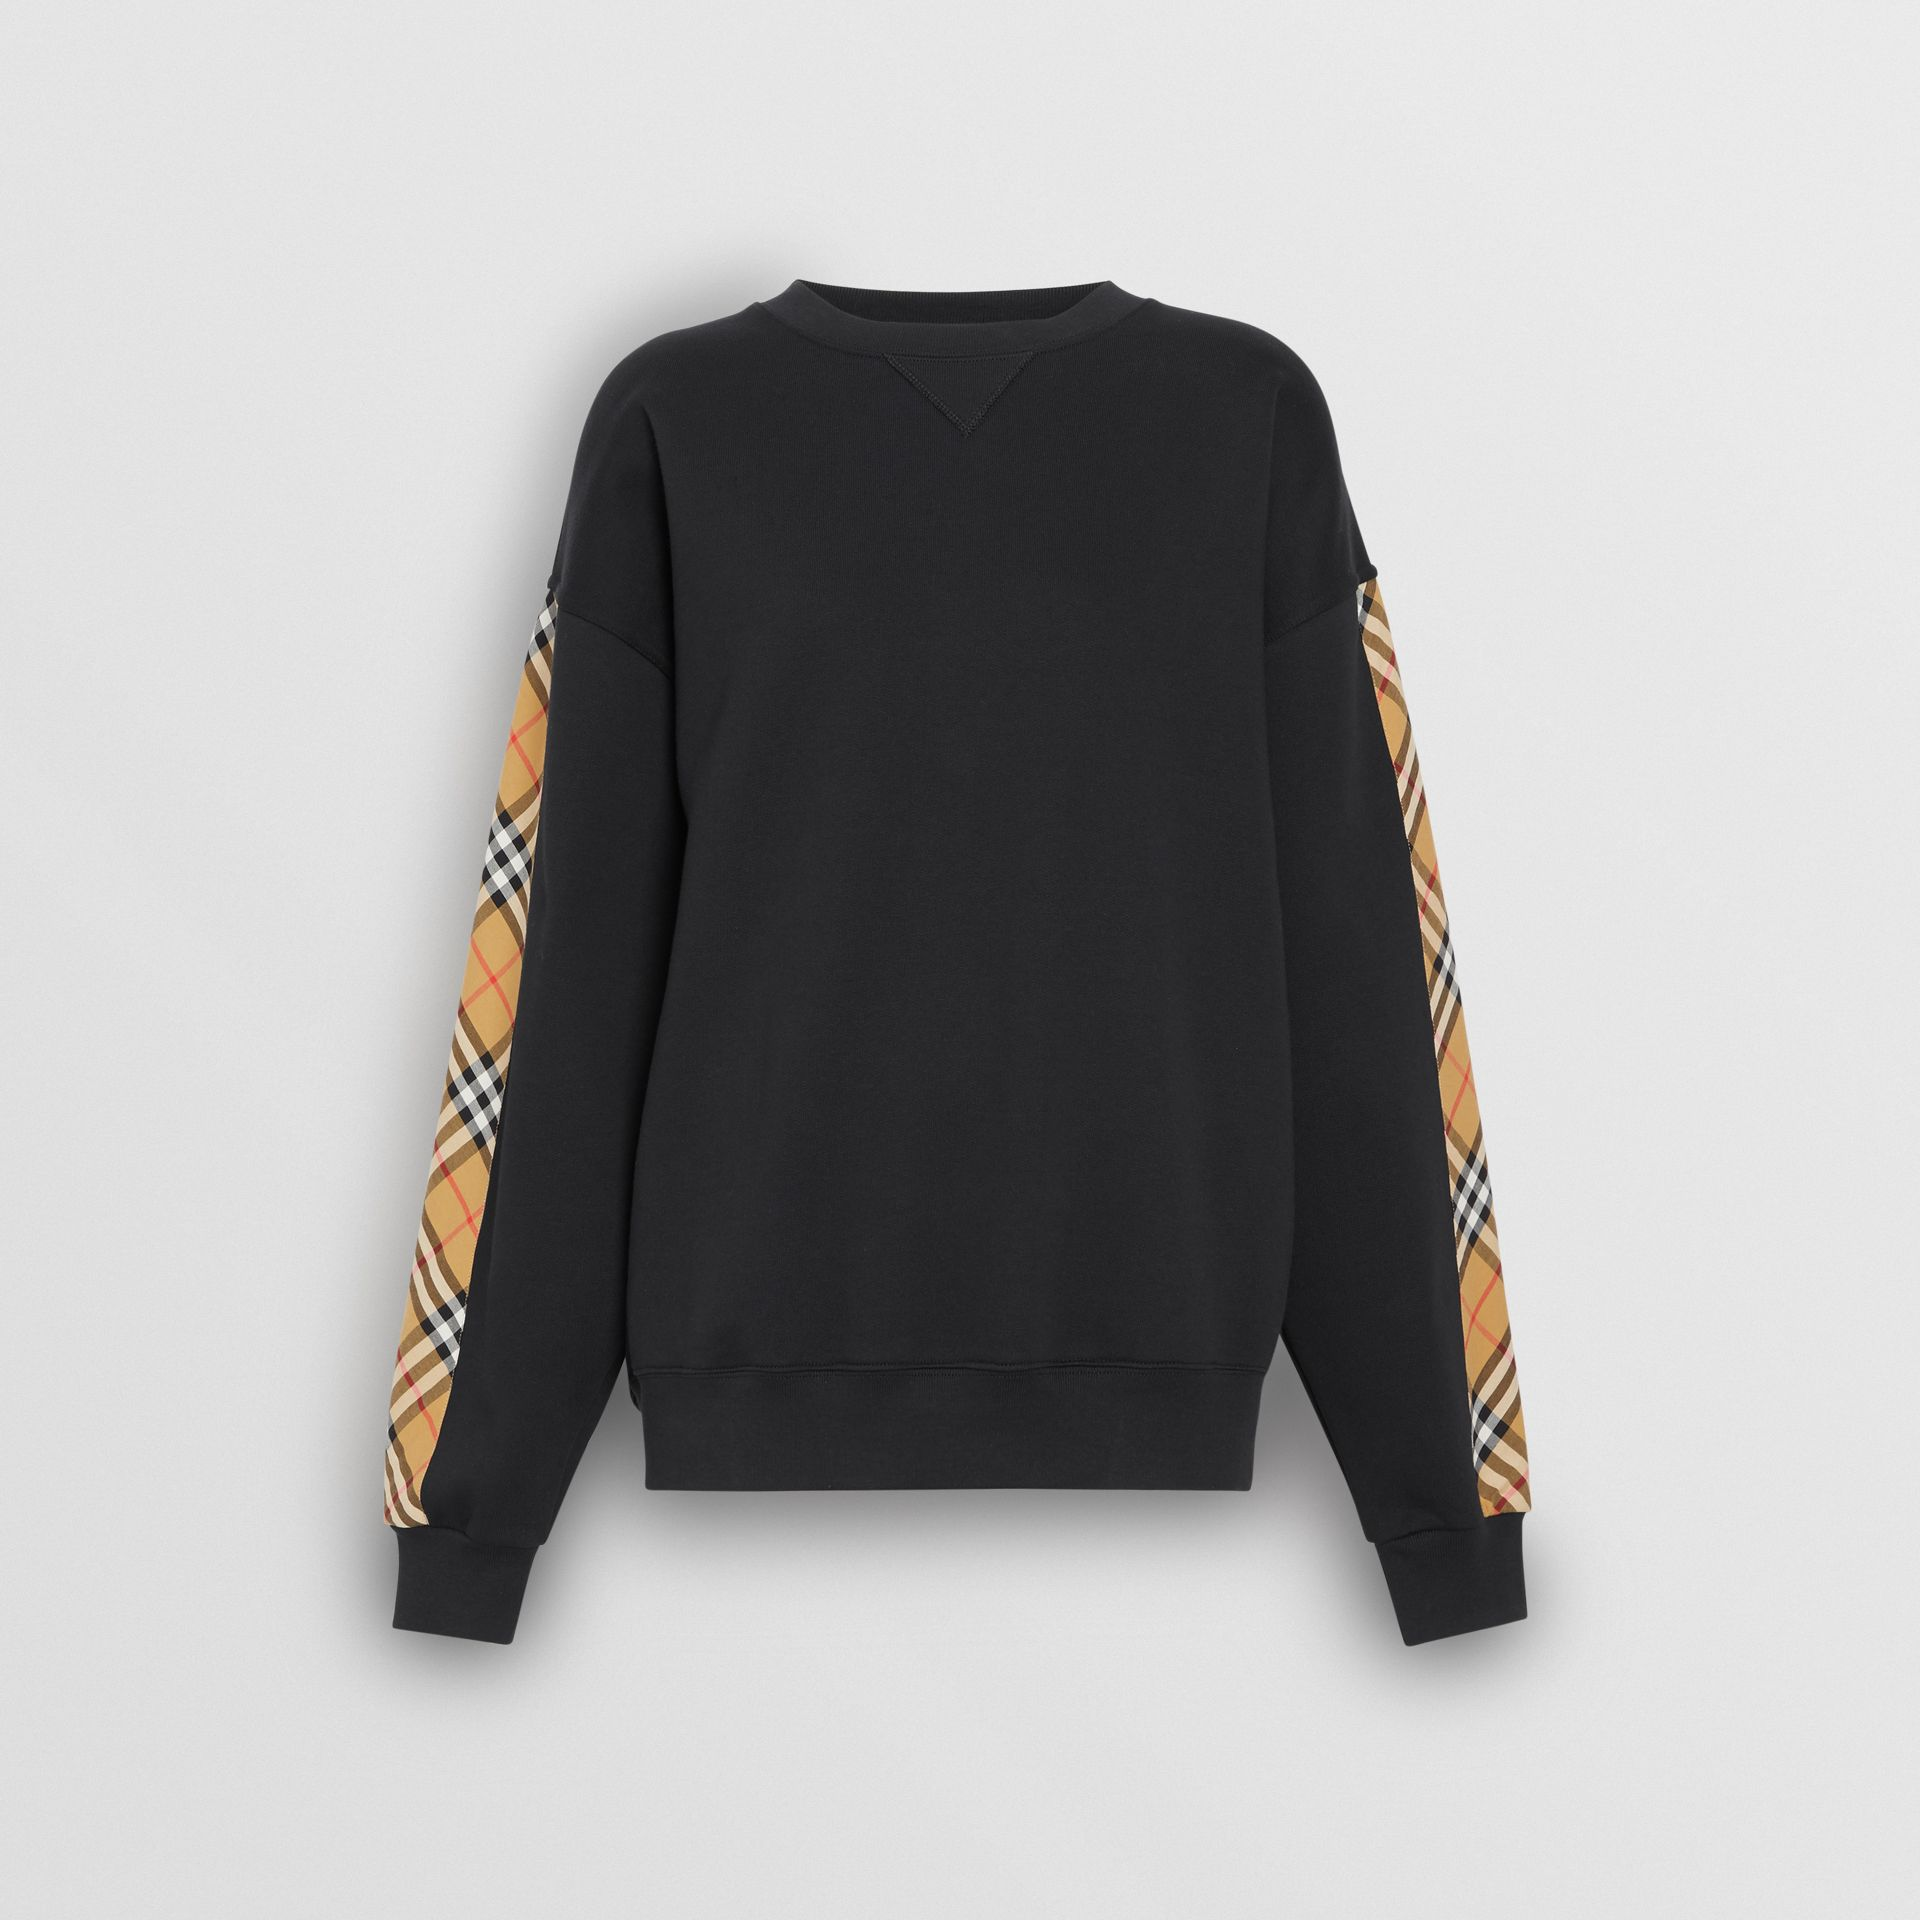 Sweat-shirt en jersey avec détails Vintage check (Noir) - Femme | Burberry - photo de la galerie 3